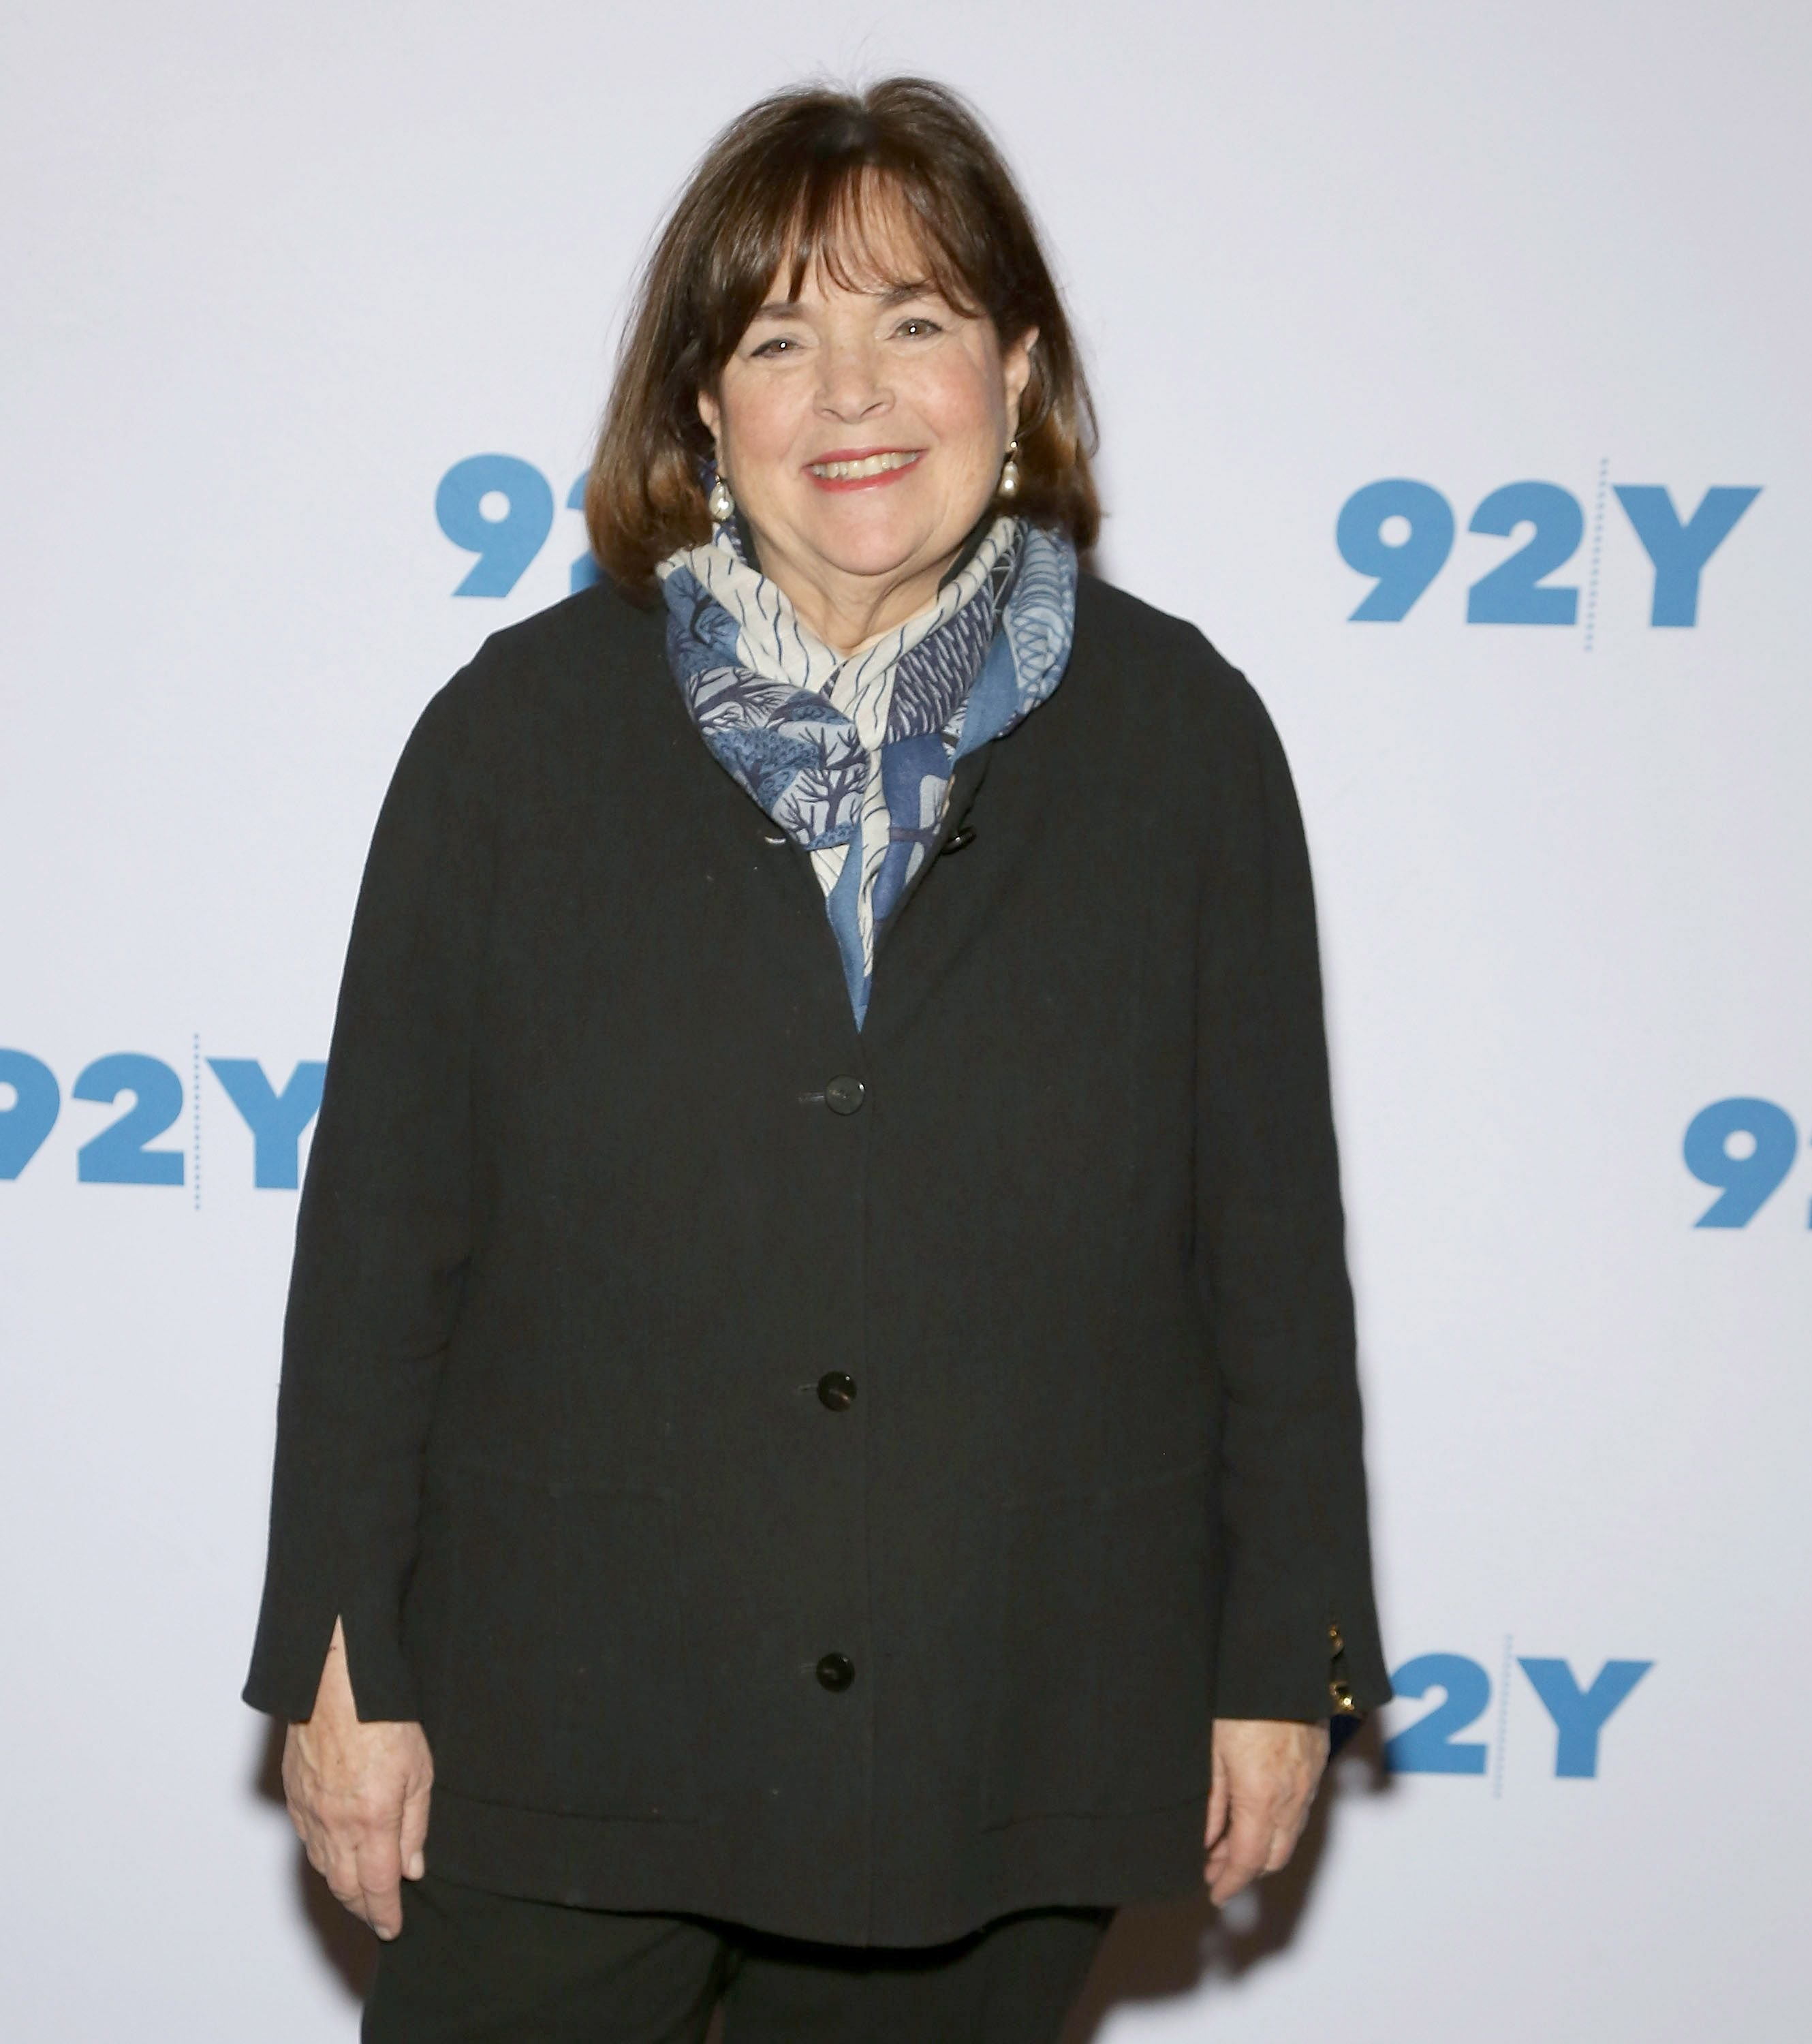 Ina Garten attends Ina Garten in Conversation with Danny Meyer at 92nd Street Y on January 31, 2017. | Photo: Getty Images